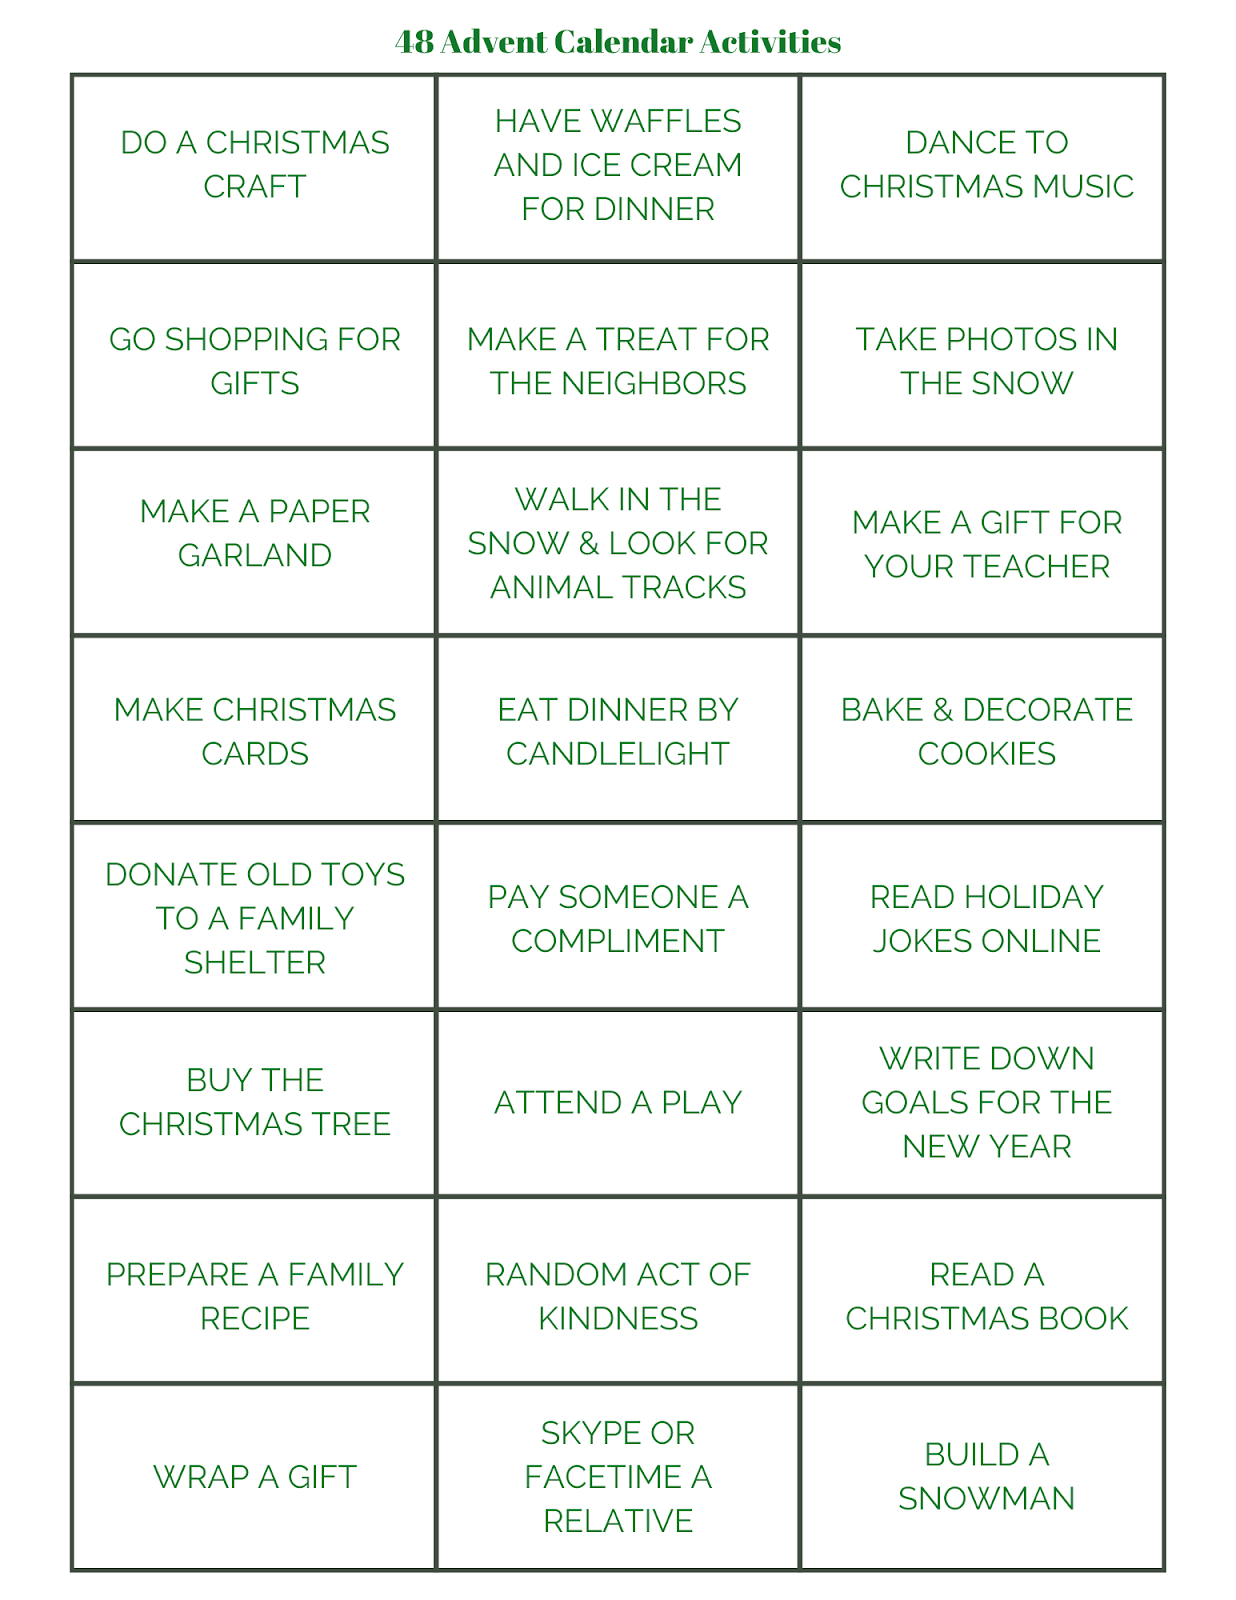 ideas for advent calendar gifts, advent calendar fillers, advent activity ideas, advent activities for families